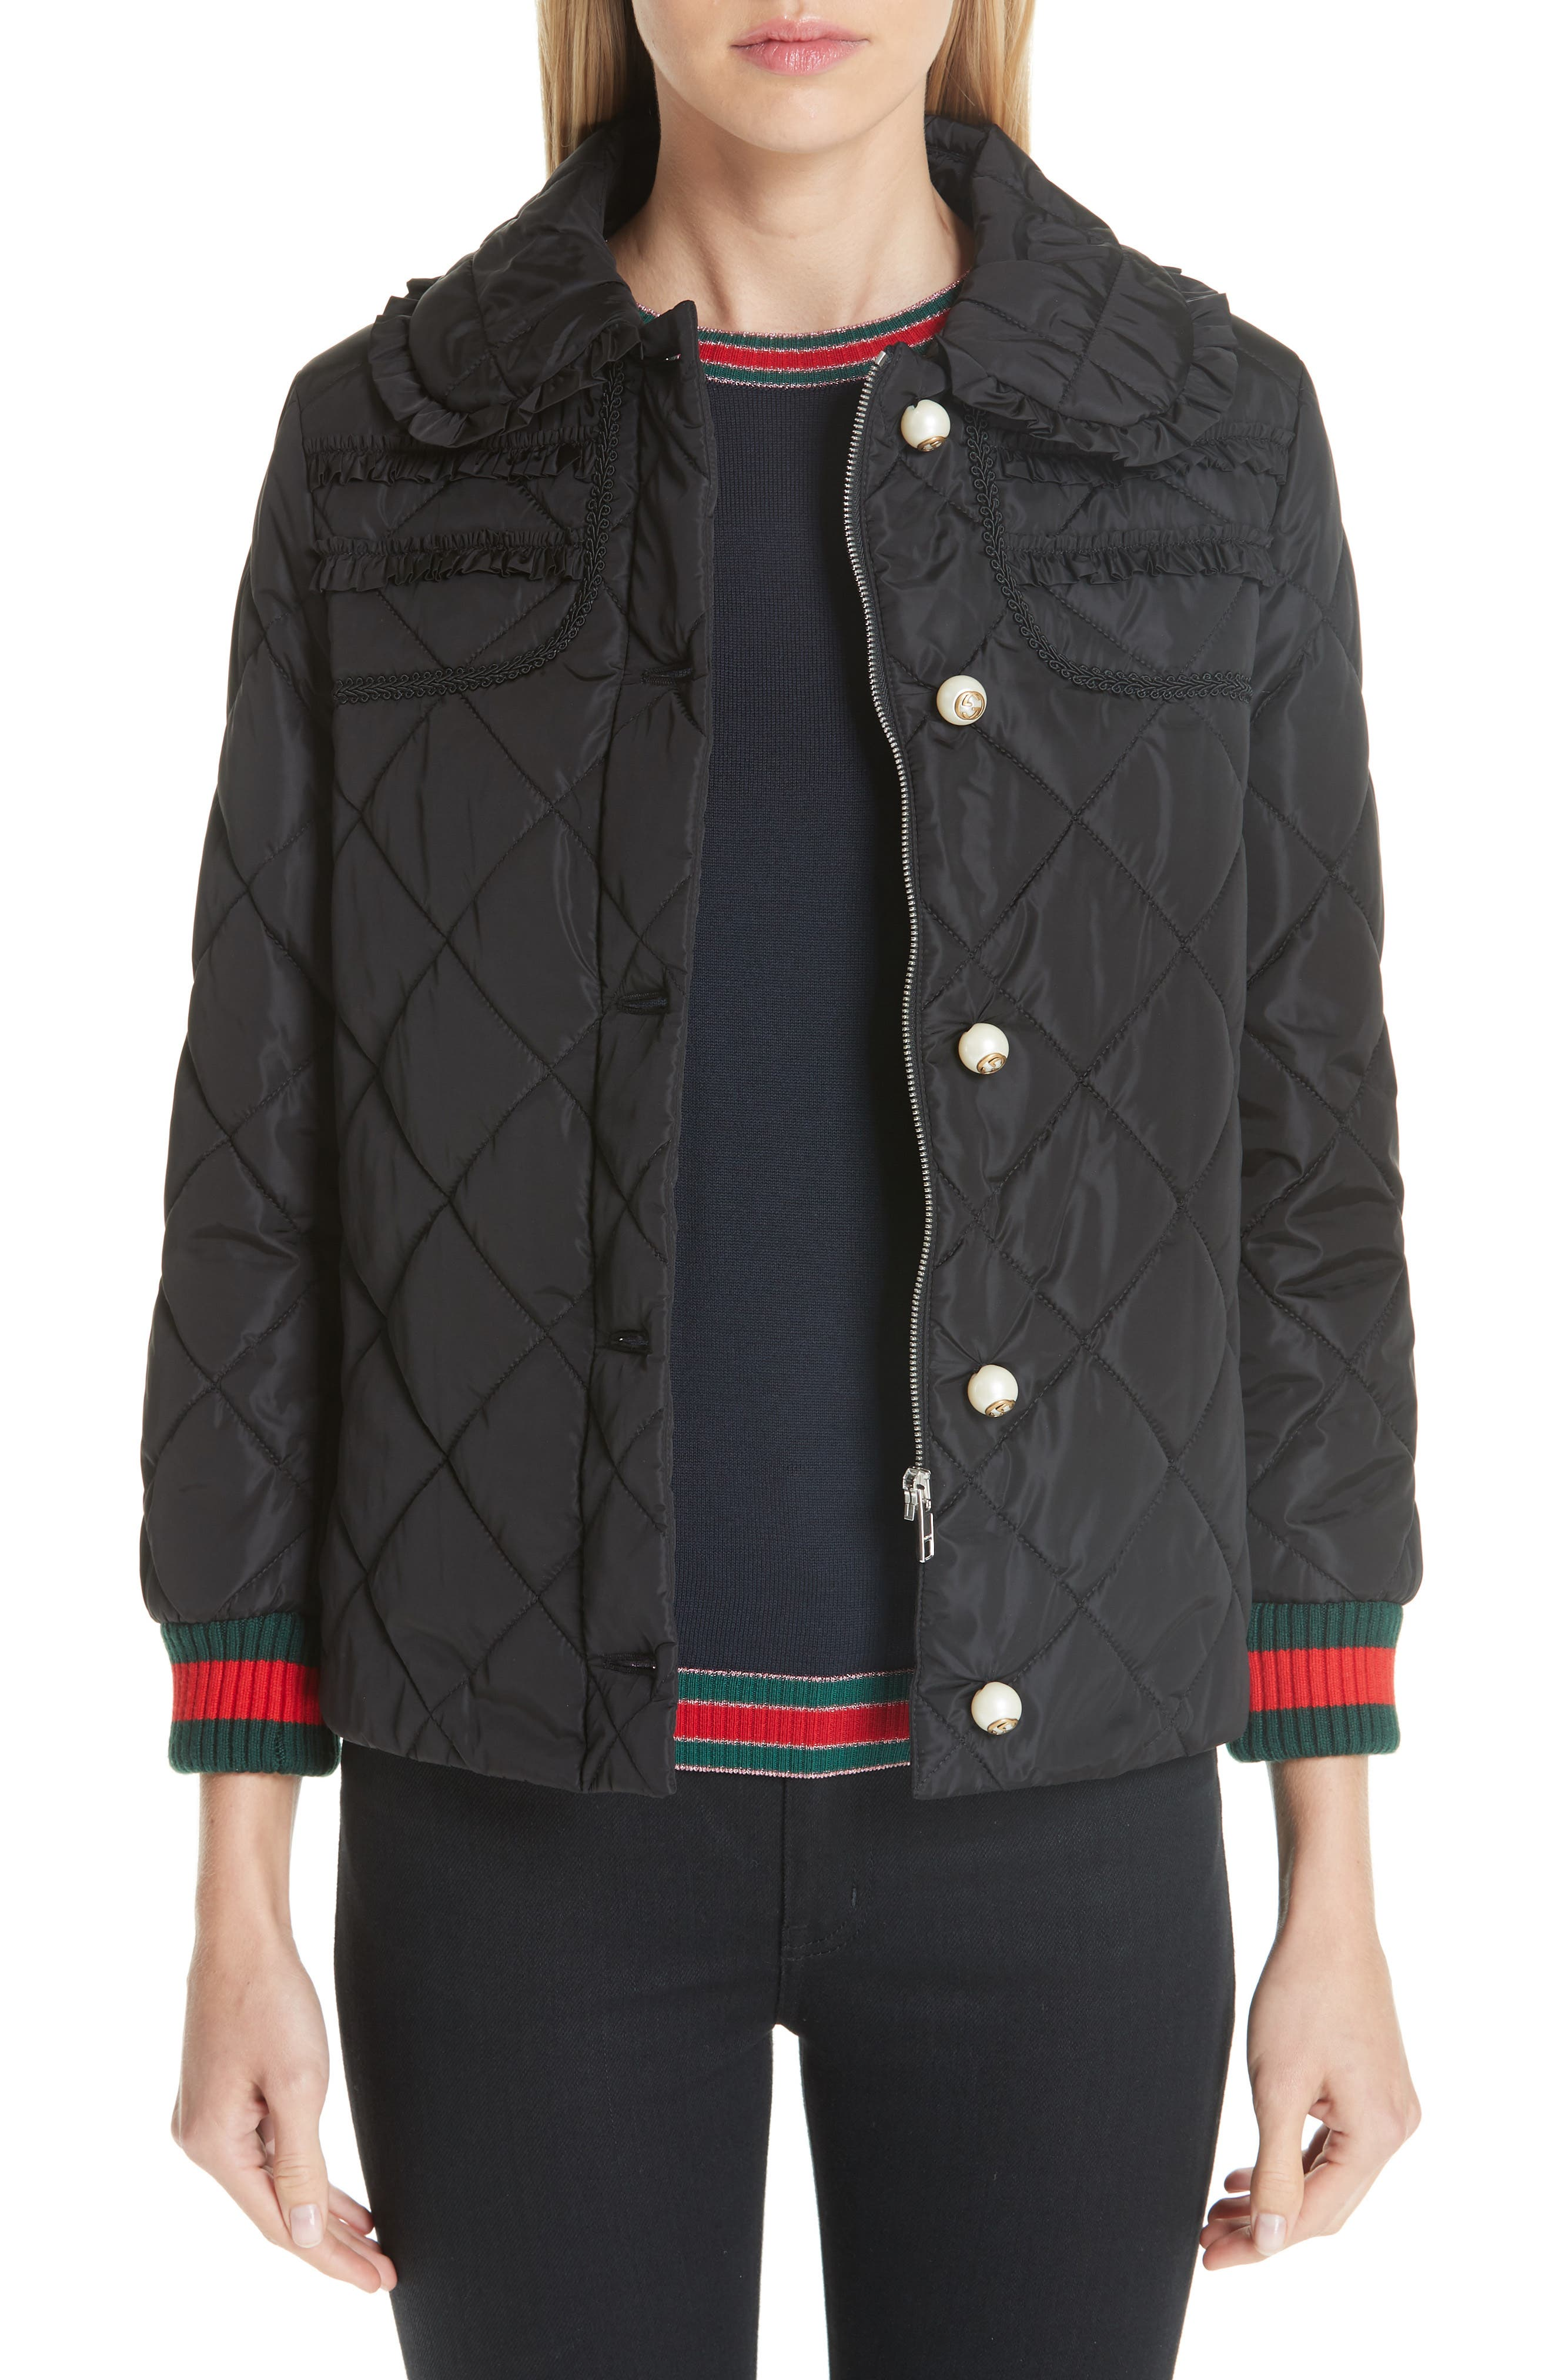 GUCCI, Ruffle Trim Quilted Caban, Main thumbnail 1, color, NERO